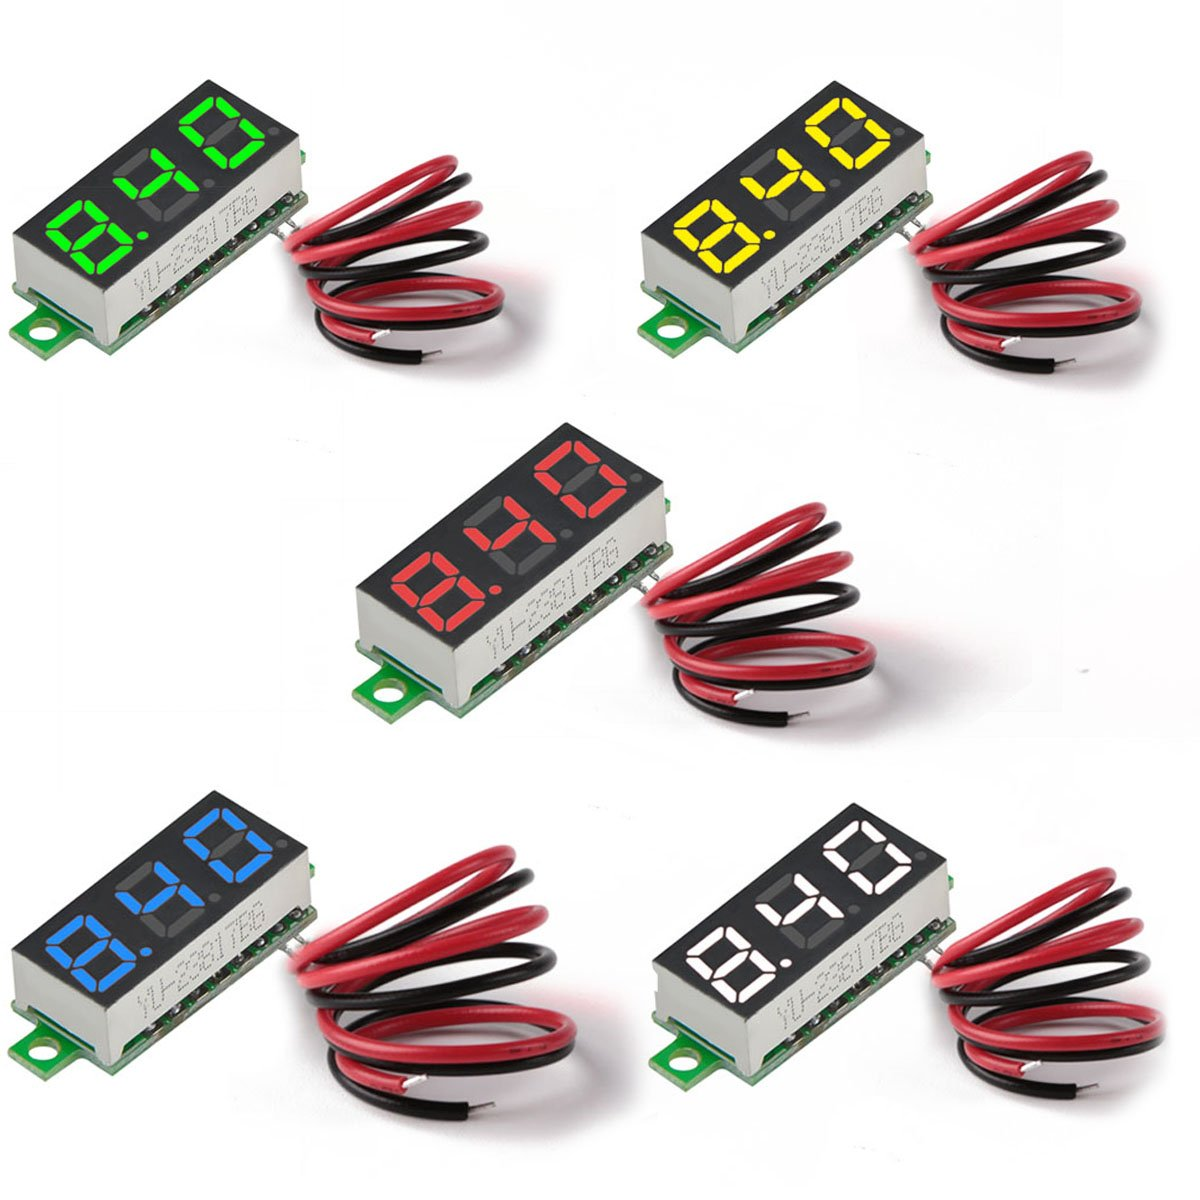 Voltage Testers Measuring Layout Tools Electrical Identification Of Conductors For Both Ac And Dc Circuits Makerfocus 5pcs Mini Digital Voltmeter 028 Inch Two Wire 25v 30v